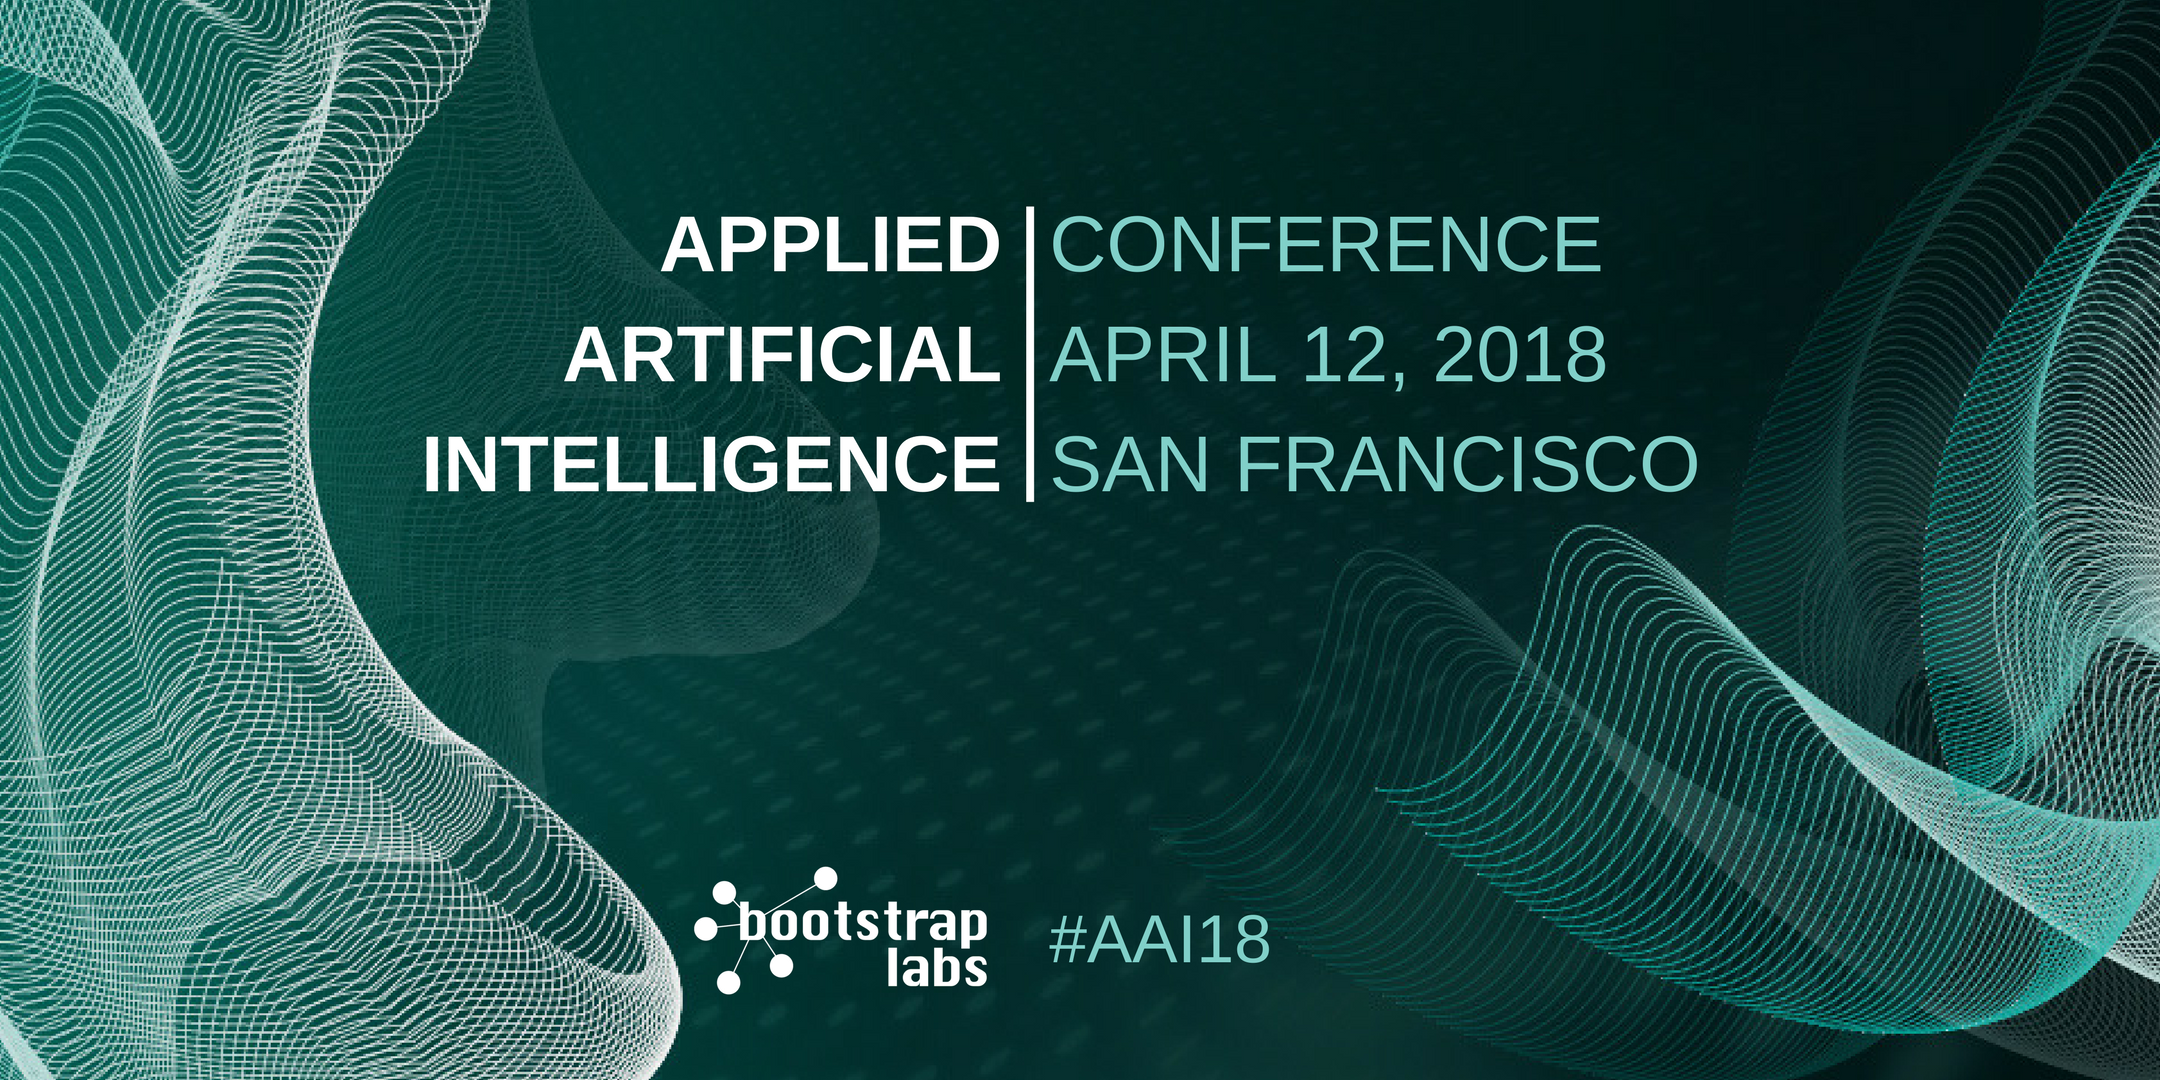 Applied-AI-Conference-2018-eventbrite